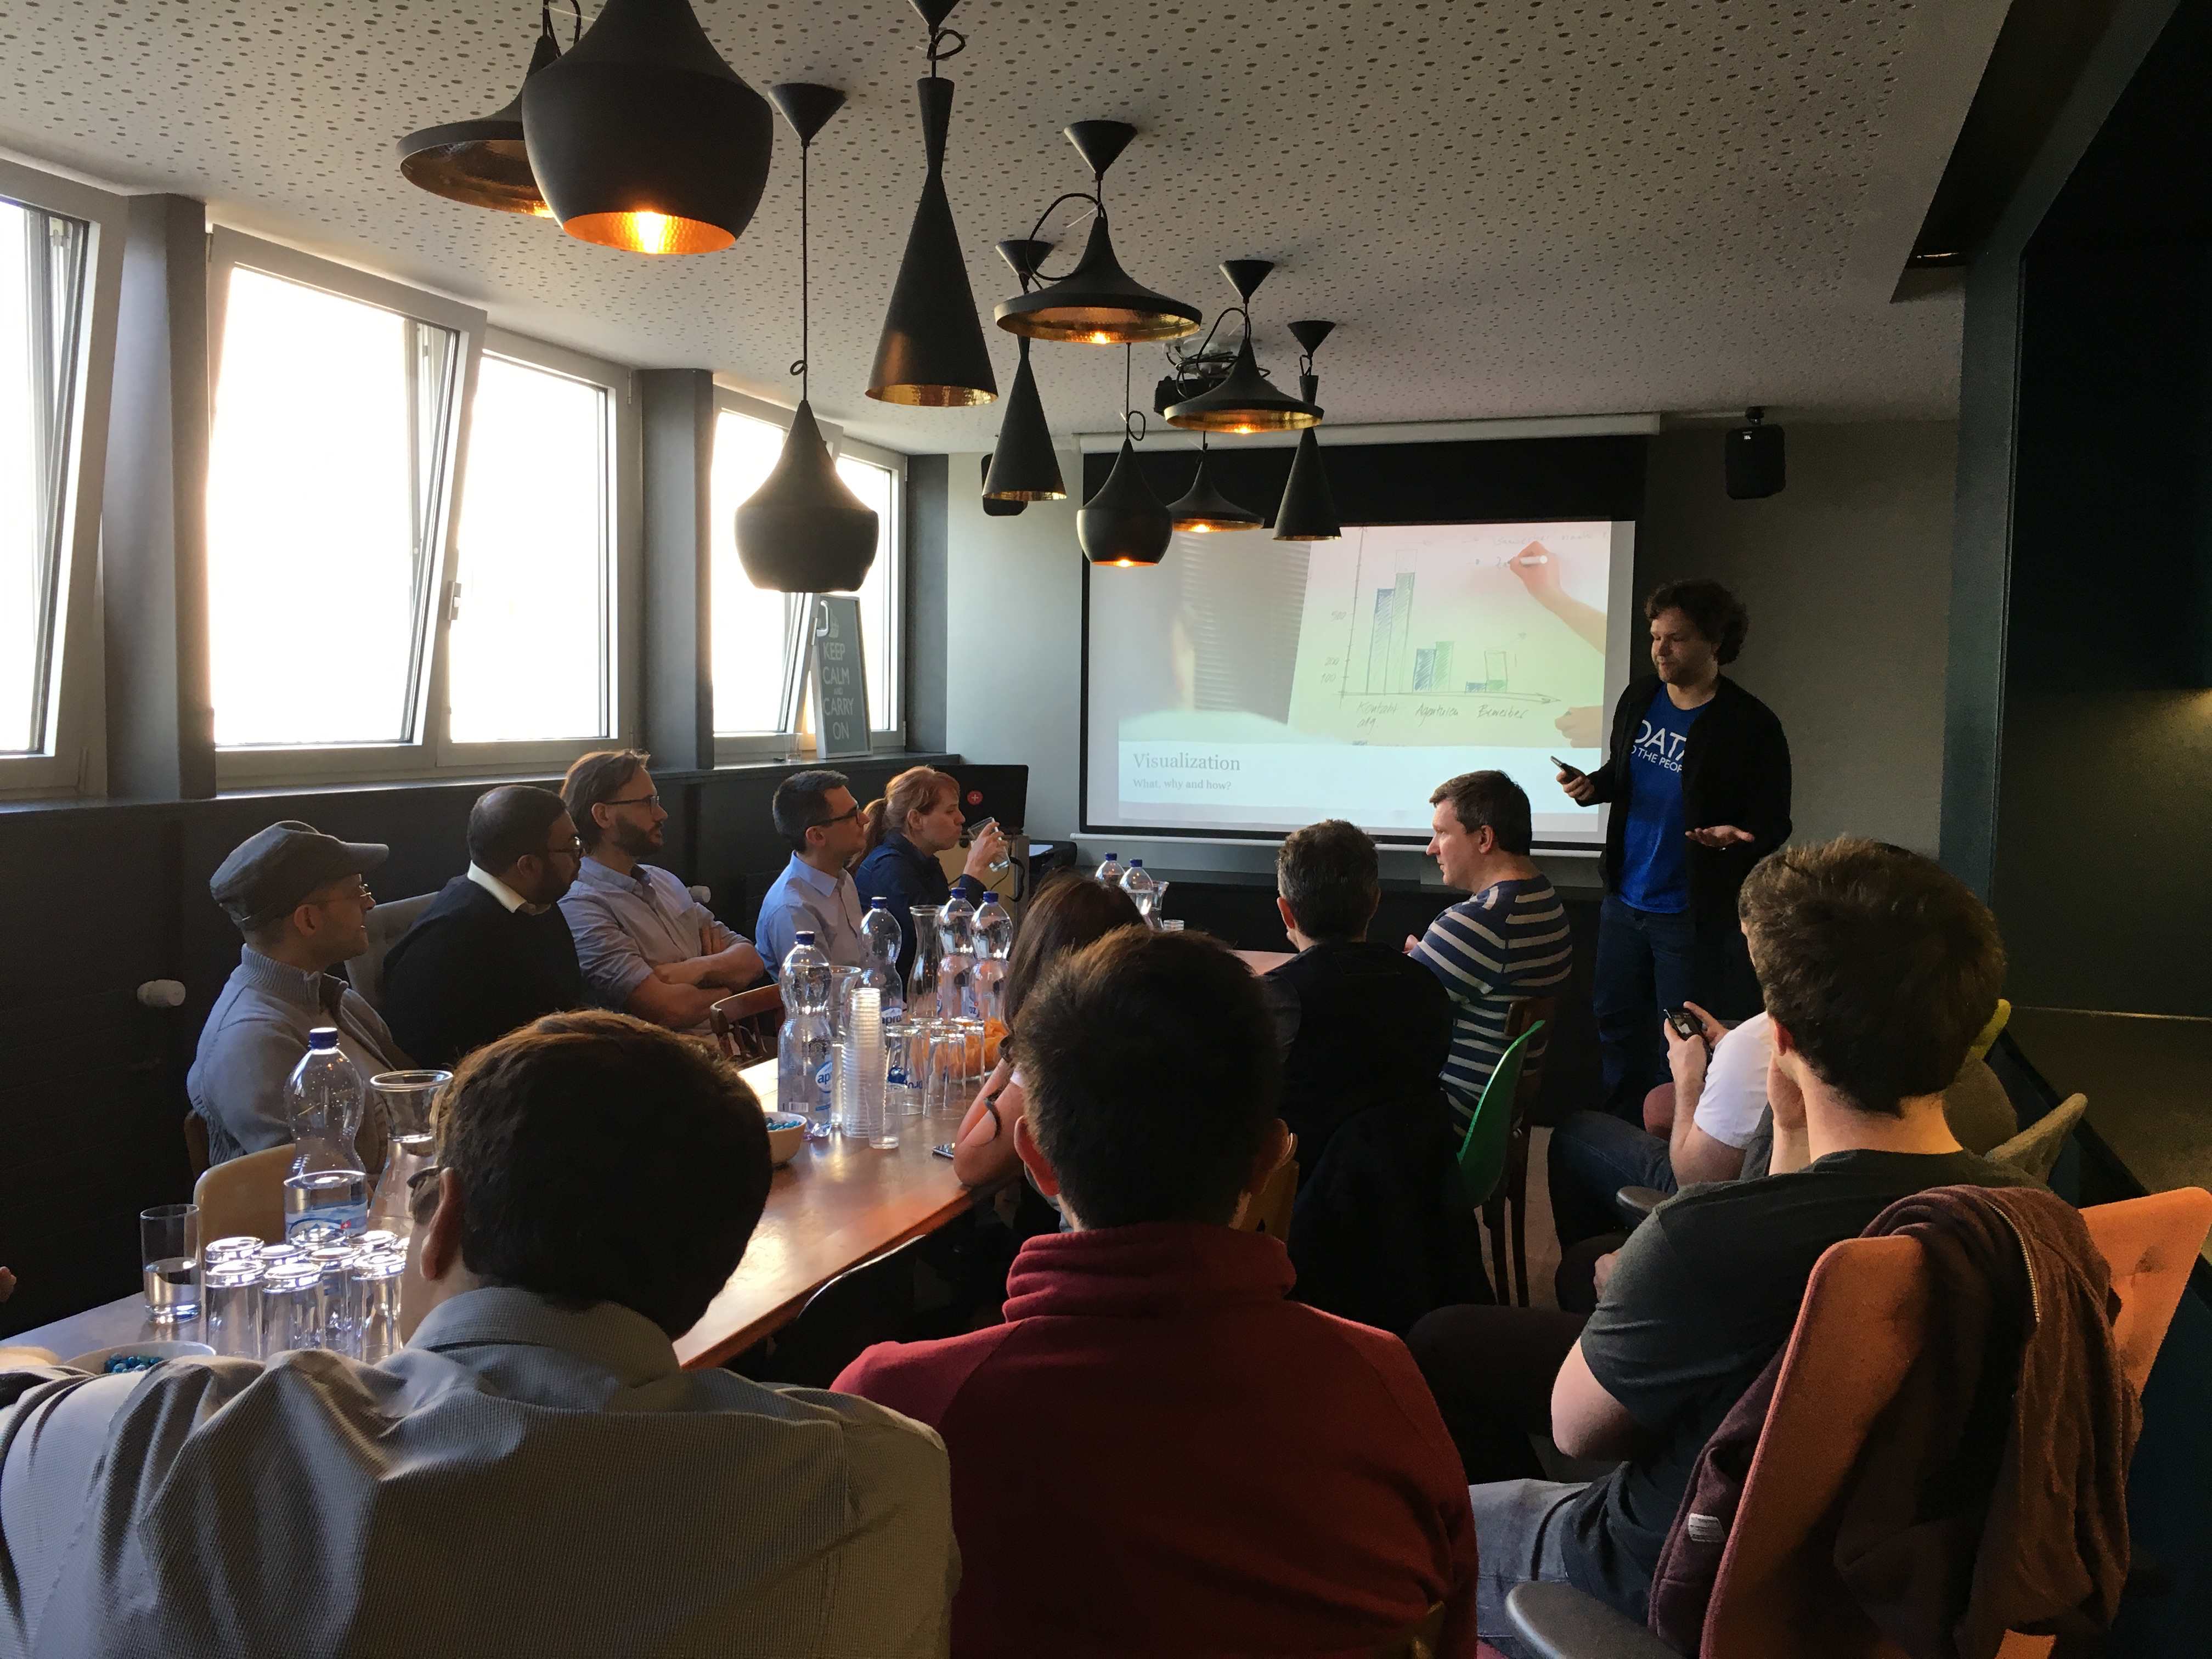 Analytics Roundtable in Zurich, 2016-04-20. © Christina Meyer: https://www.meetup.com/Analytics-Roundtable-Zurich/members/115830642/